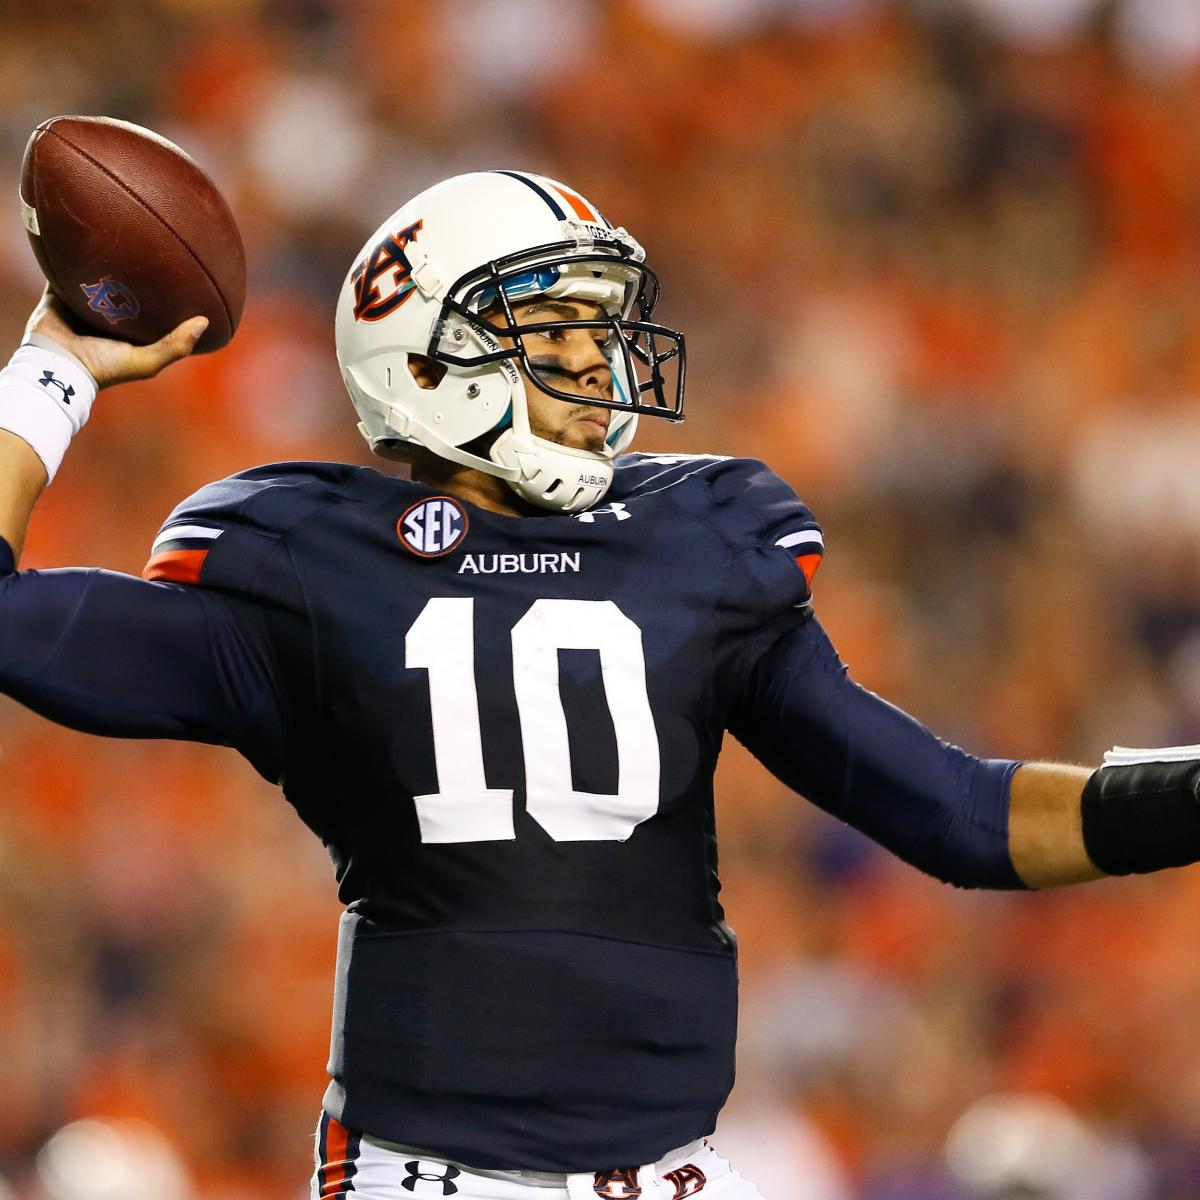 Auburn Spring Game 2013: Key Storylines to Watch in Tigers ...